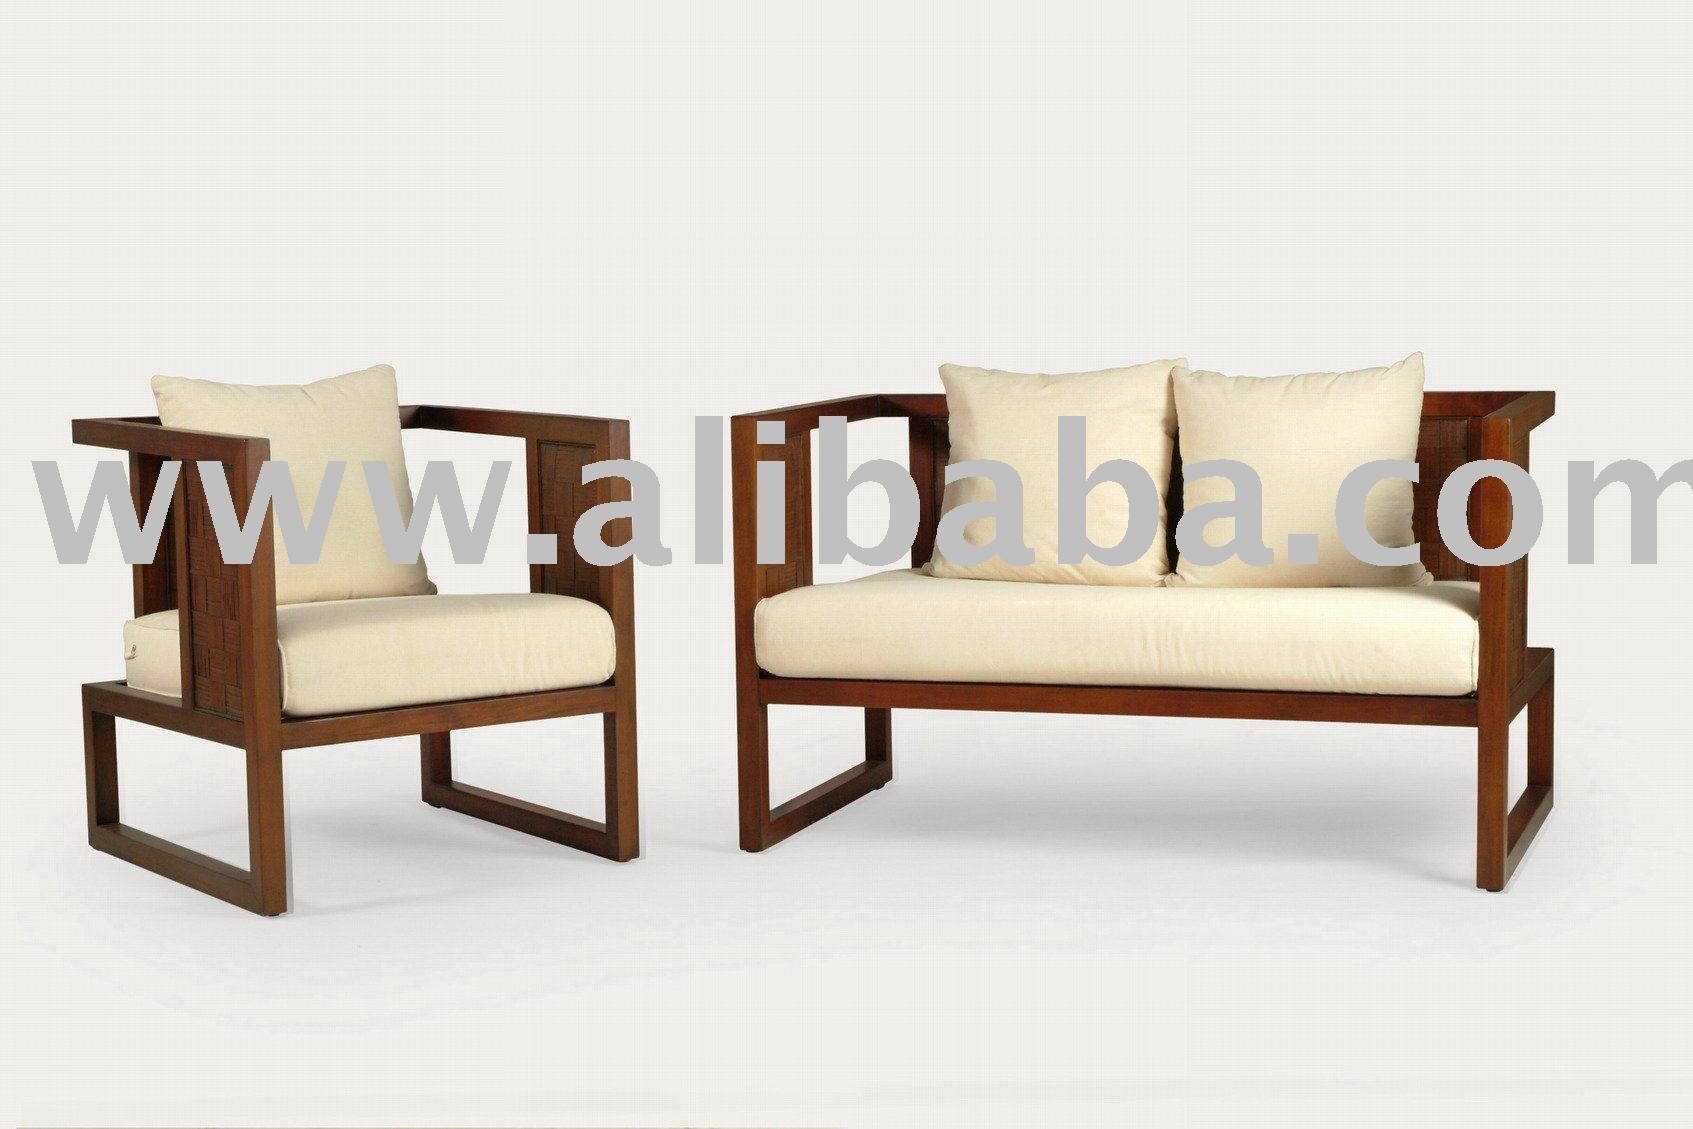 Inda Waschbeckenschrank Sofa Set Price Ph Designer Sofa Sets In Delhi Baci